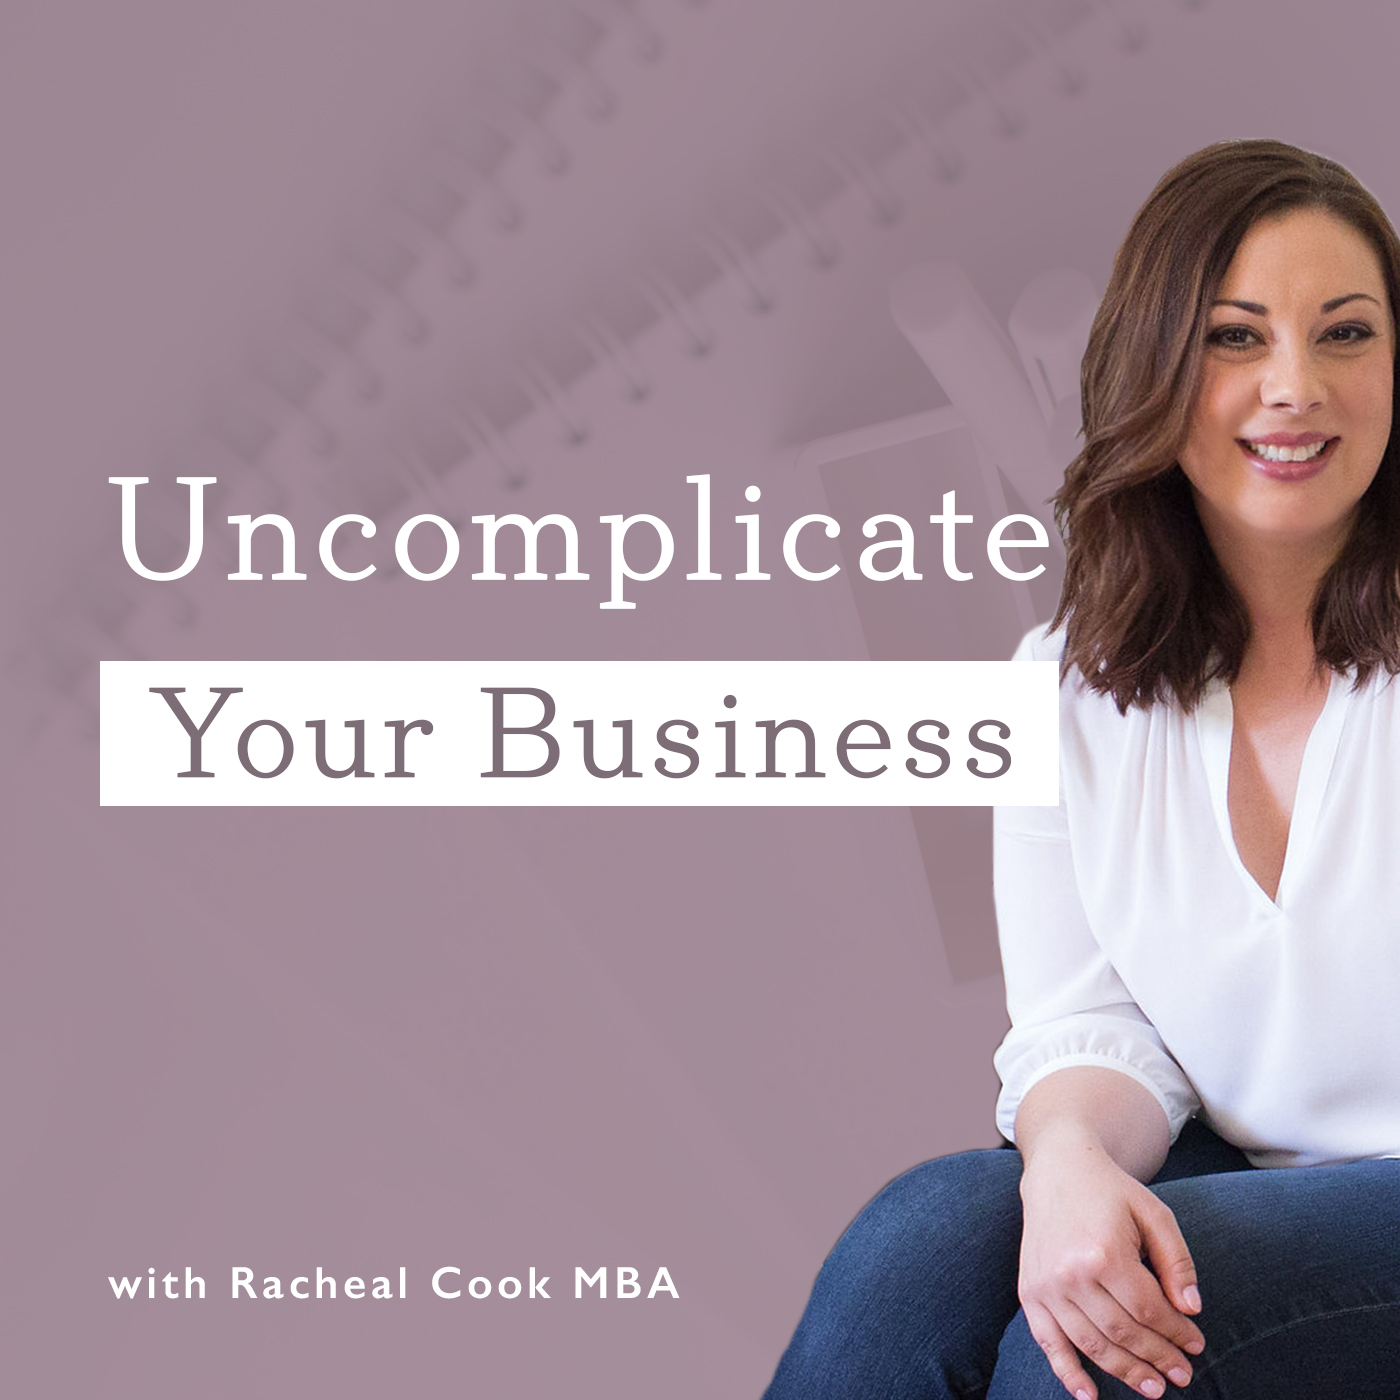 Uncomplicate Your Business